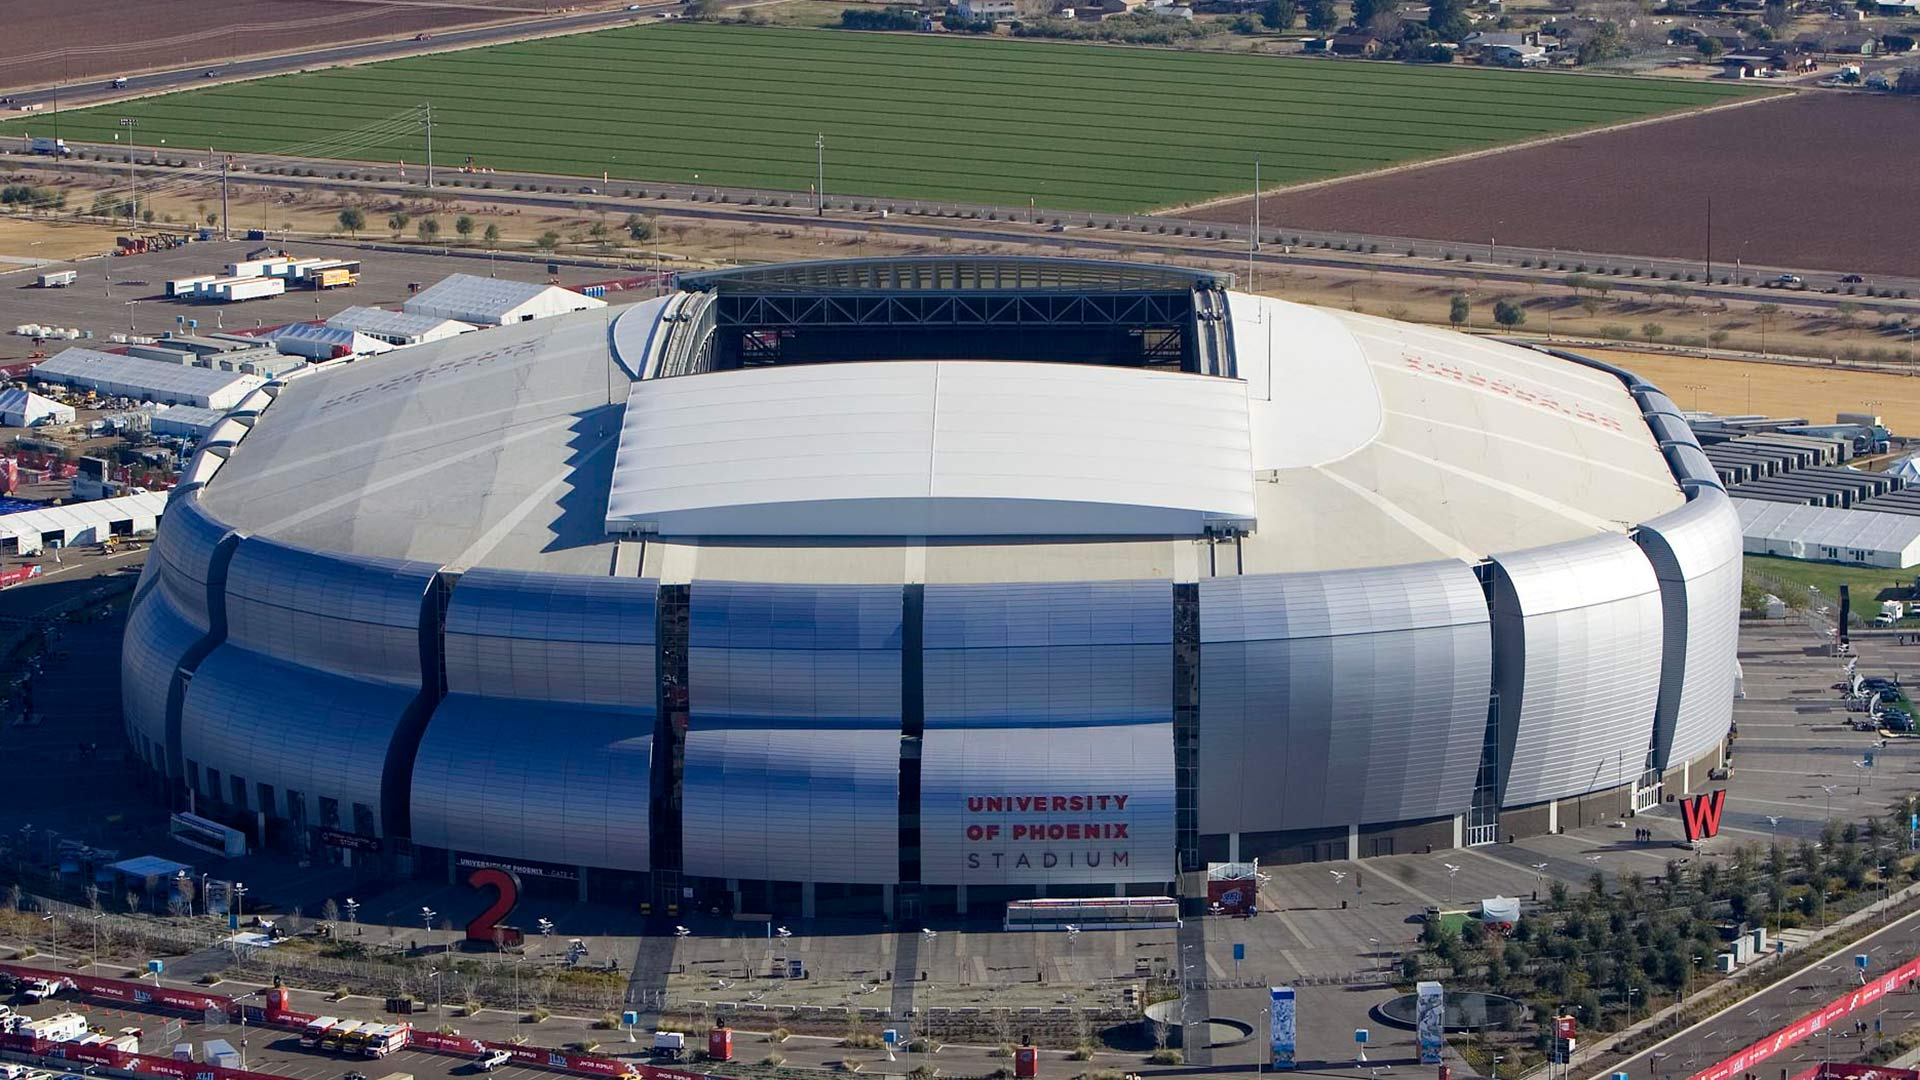 The University of Phoenix Stadium in Glendale, Arizona, has a retractable roof.